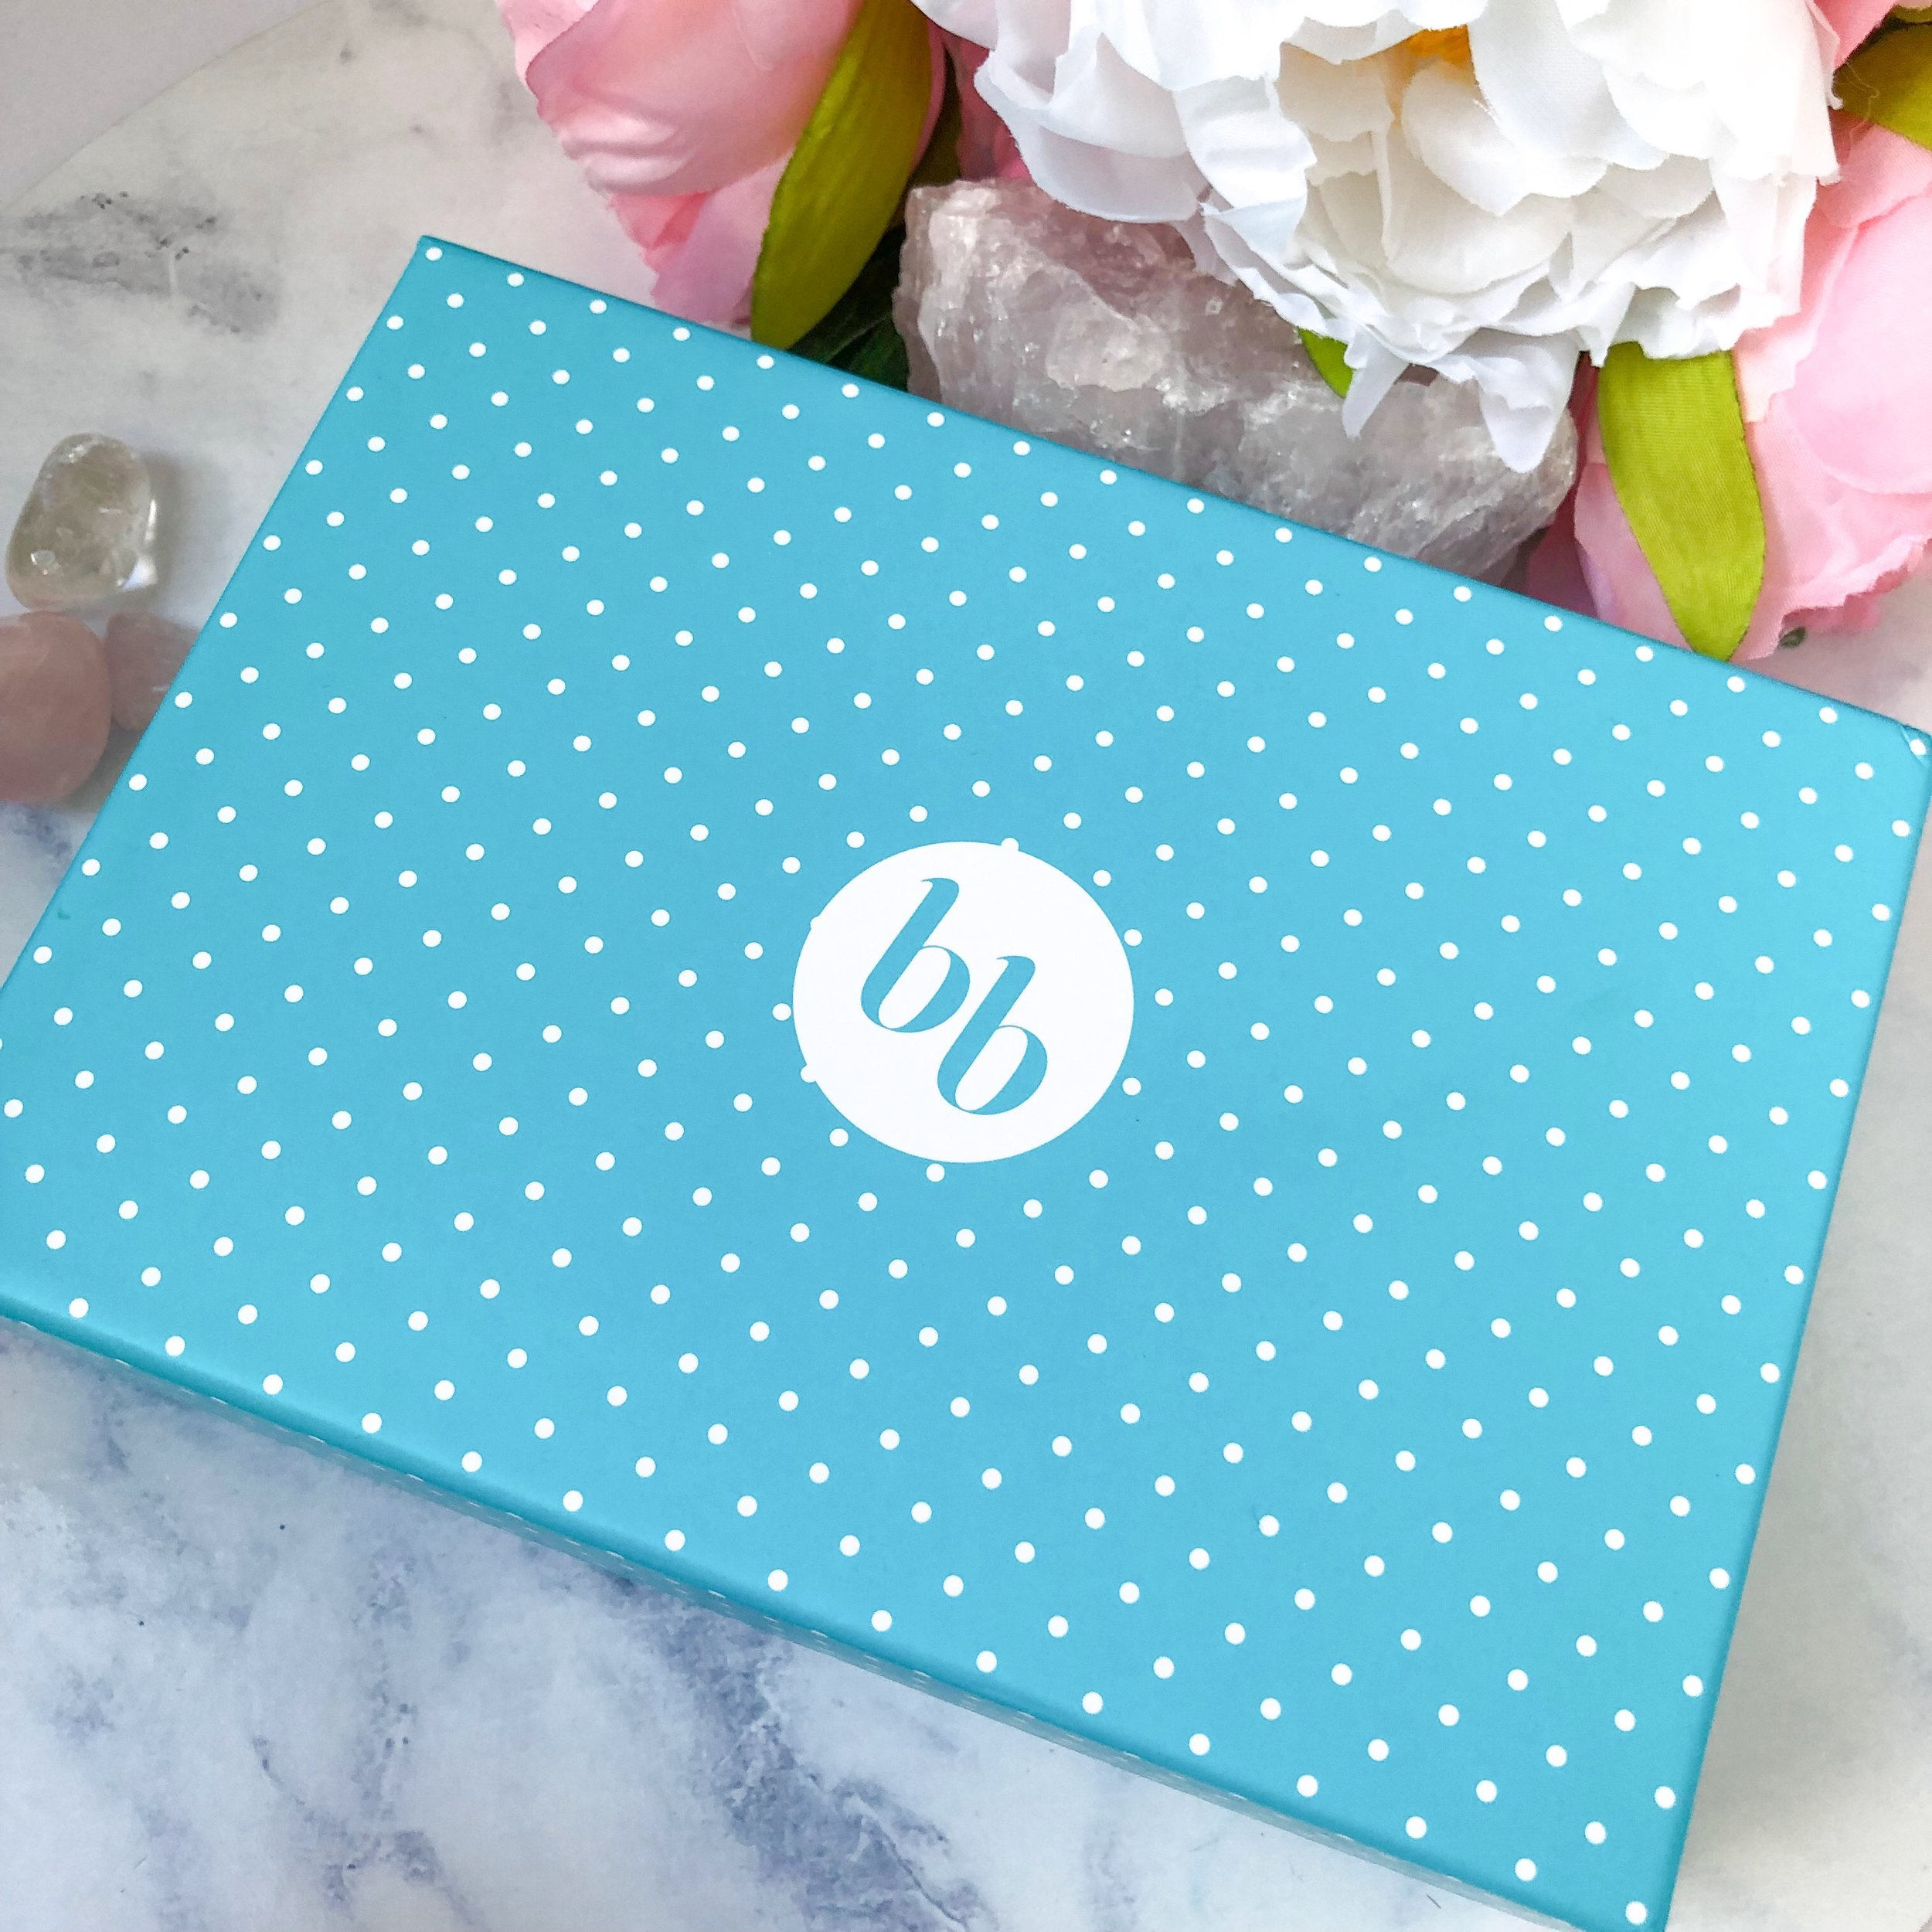 Bellabox Aqua Box.jpg